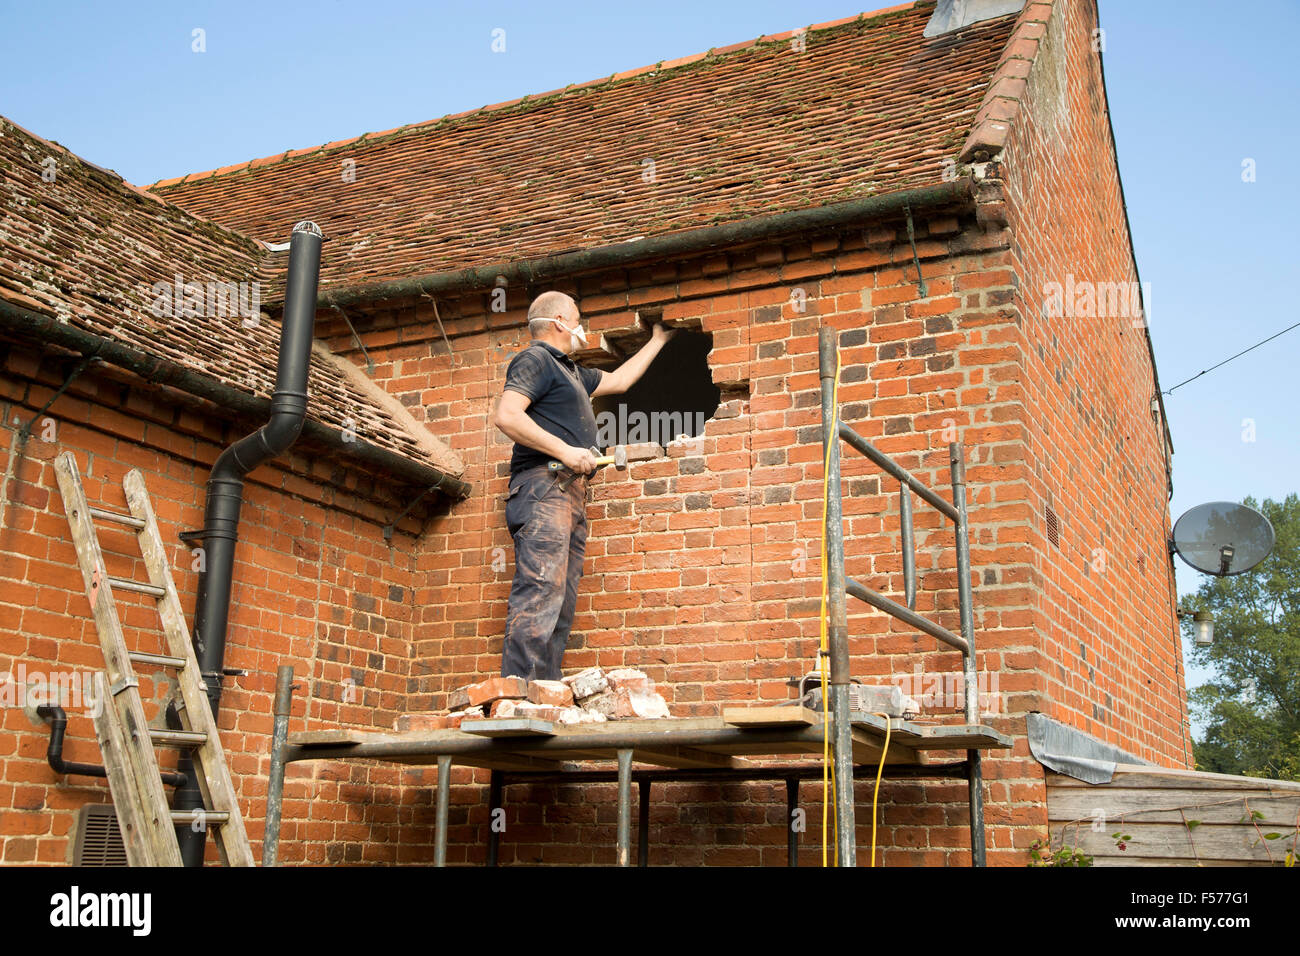 Builder removing red bricks to make window space, Suffolk, England, UK - Stock Image